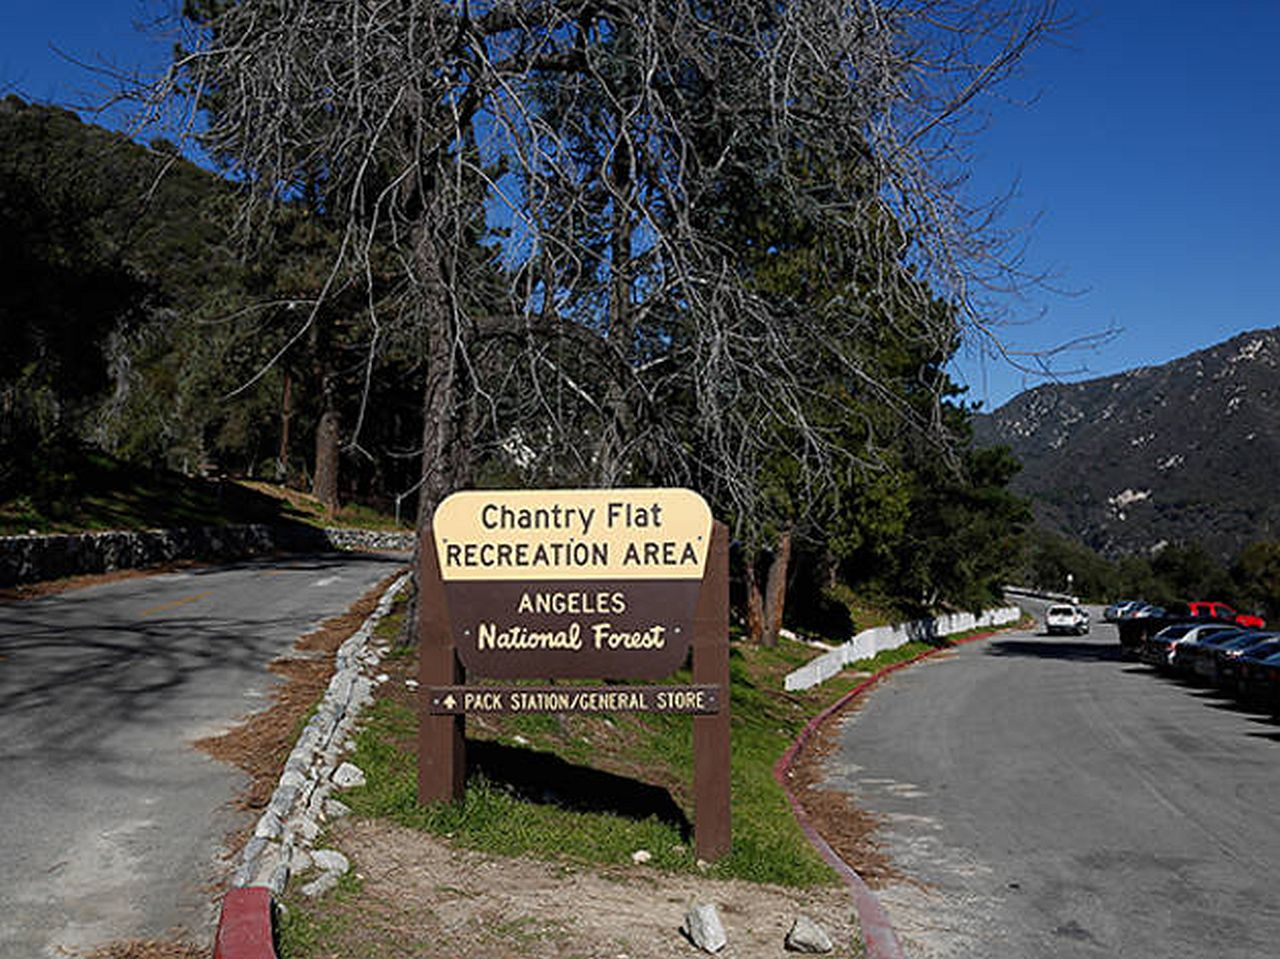 Big Santa Anita Chantry Flat Picnic Area